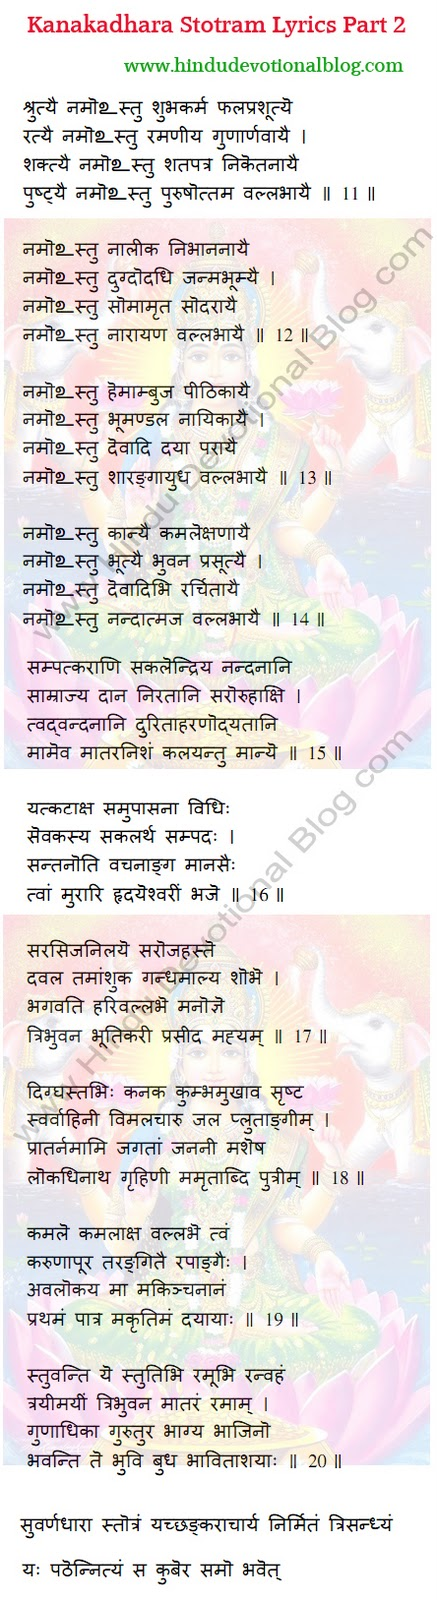 Kanakadhara Stotram Lyrics in Devanagari Part 2 Screenshot Free Download Adi Shankaracharya Mantra